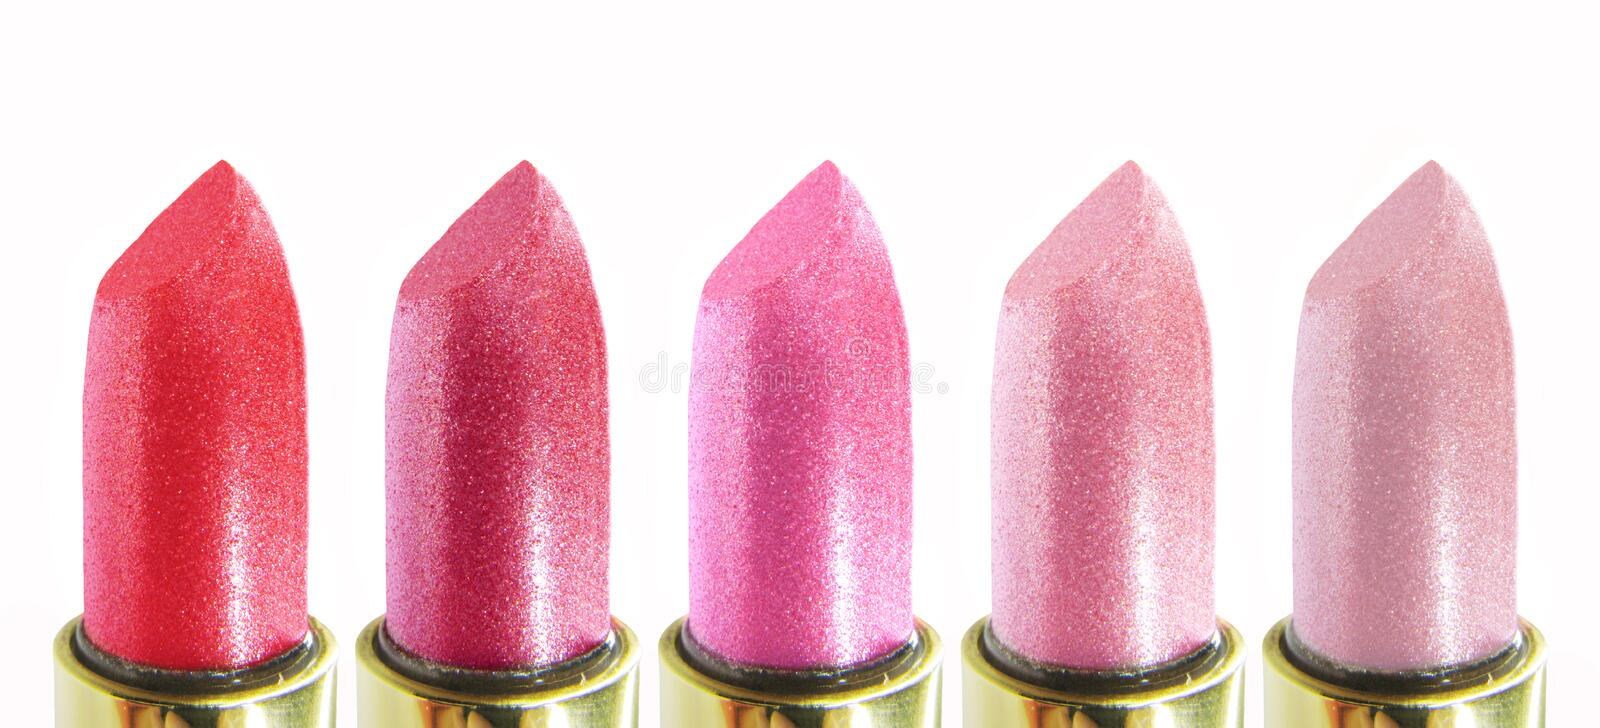 Collection of pink lipsticks royalty free stock image